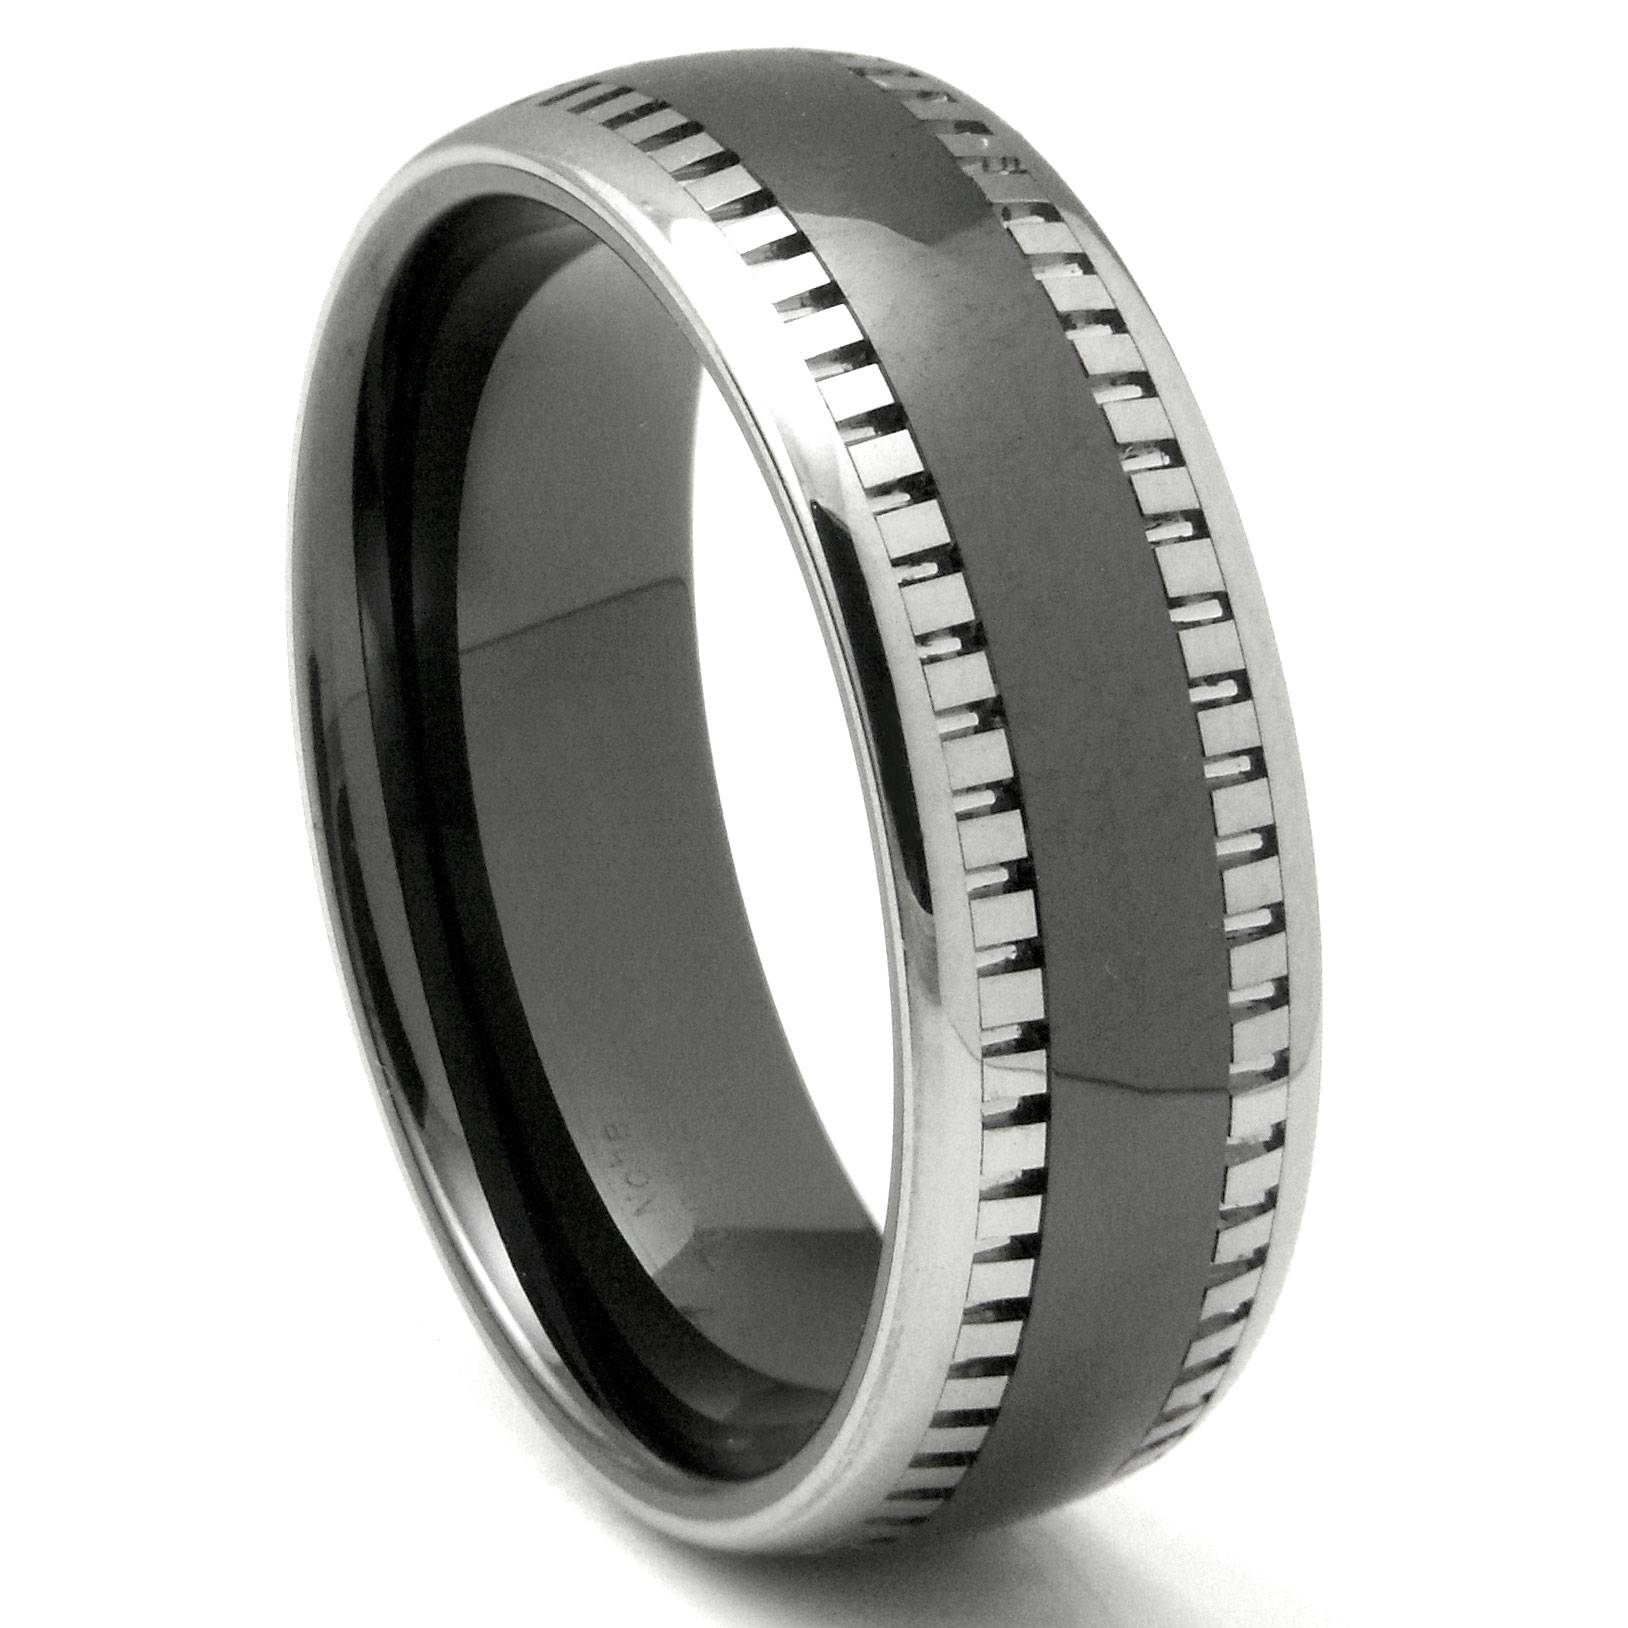 2Nd Generation Tungsten Carbide Two Tone Milgrain Dome Wedding Regarding Mens Milgrain Wedding Bands (View 4 of 15)